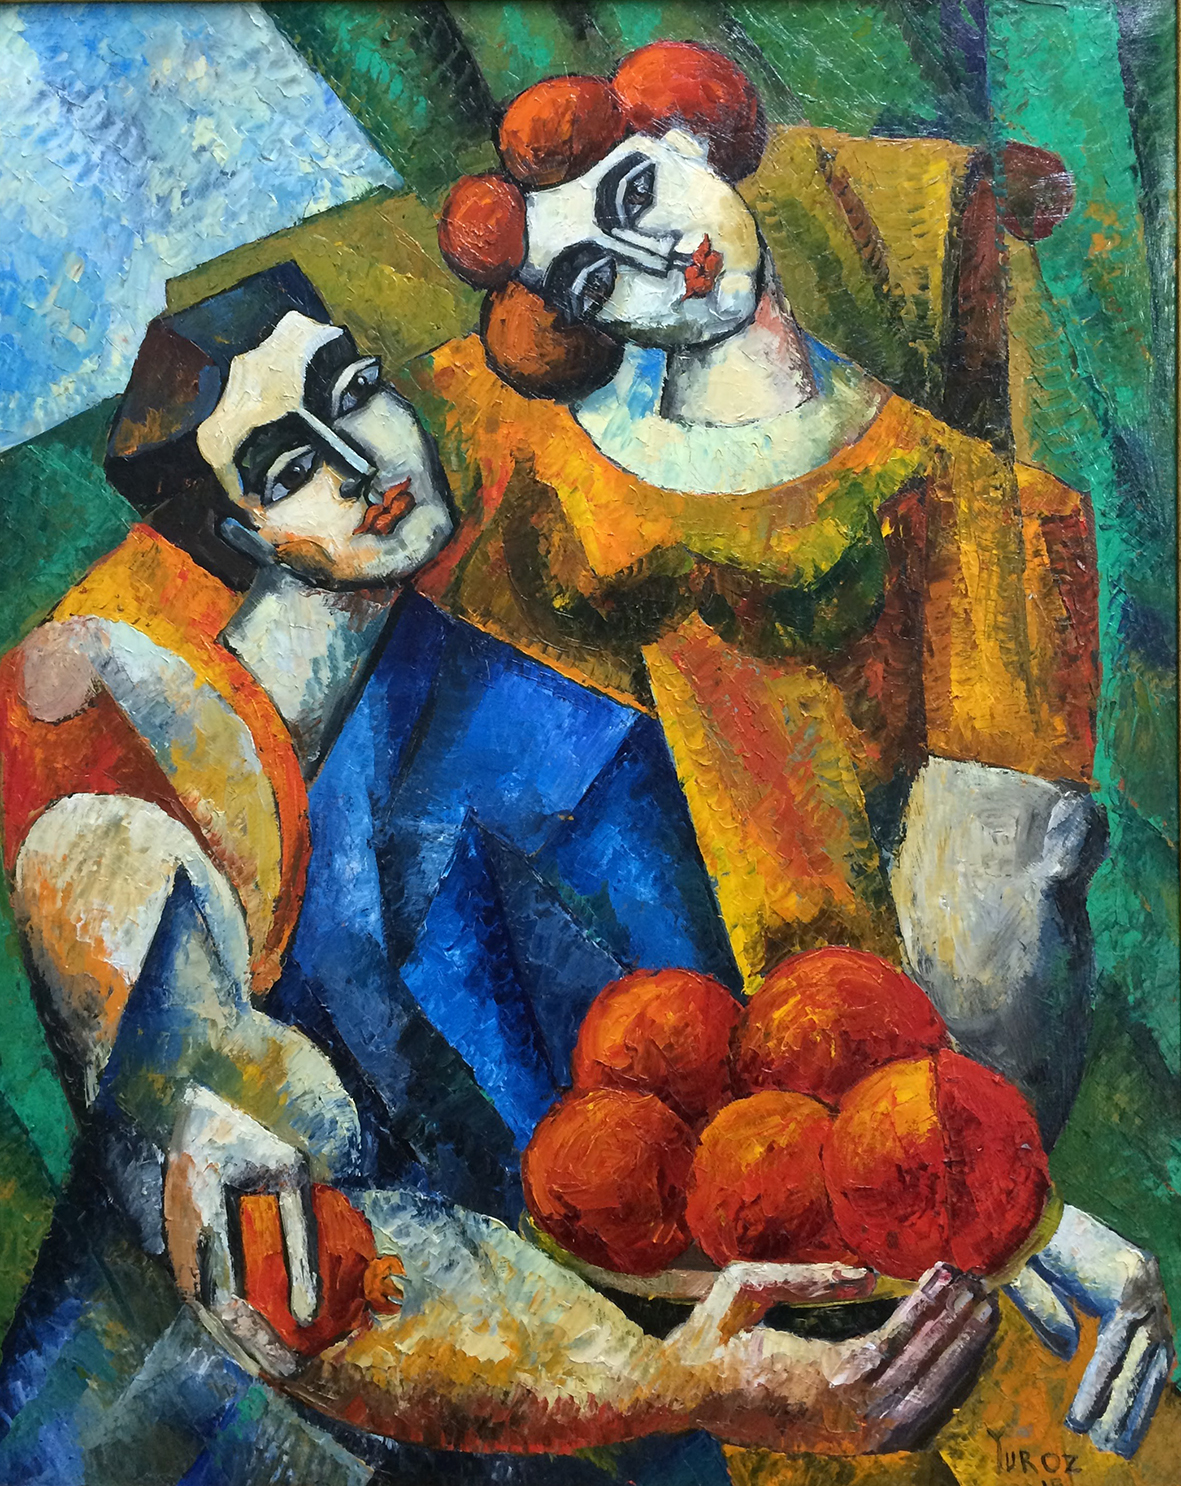 Lovers with Pomegranates, 75 x 60cm, oil